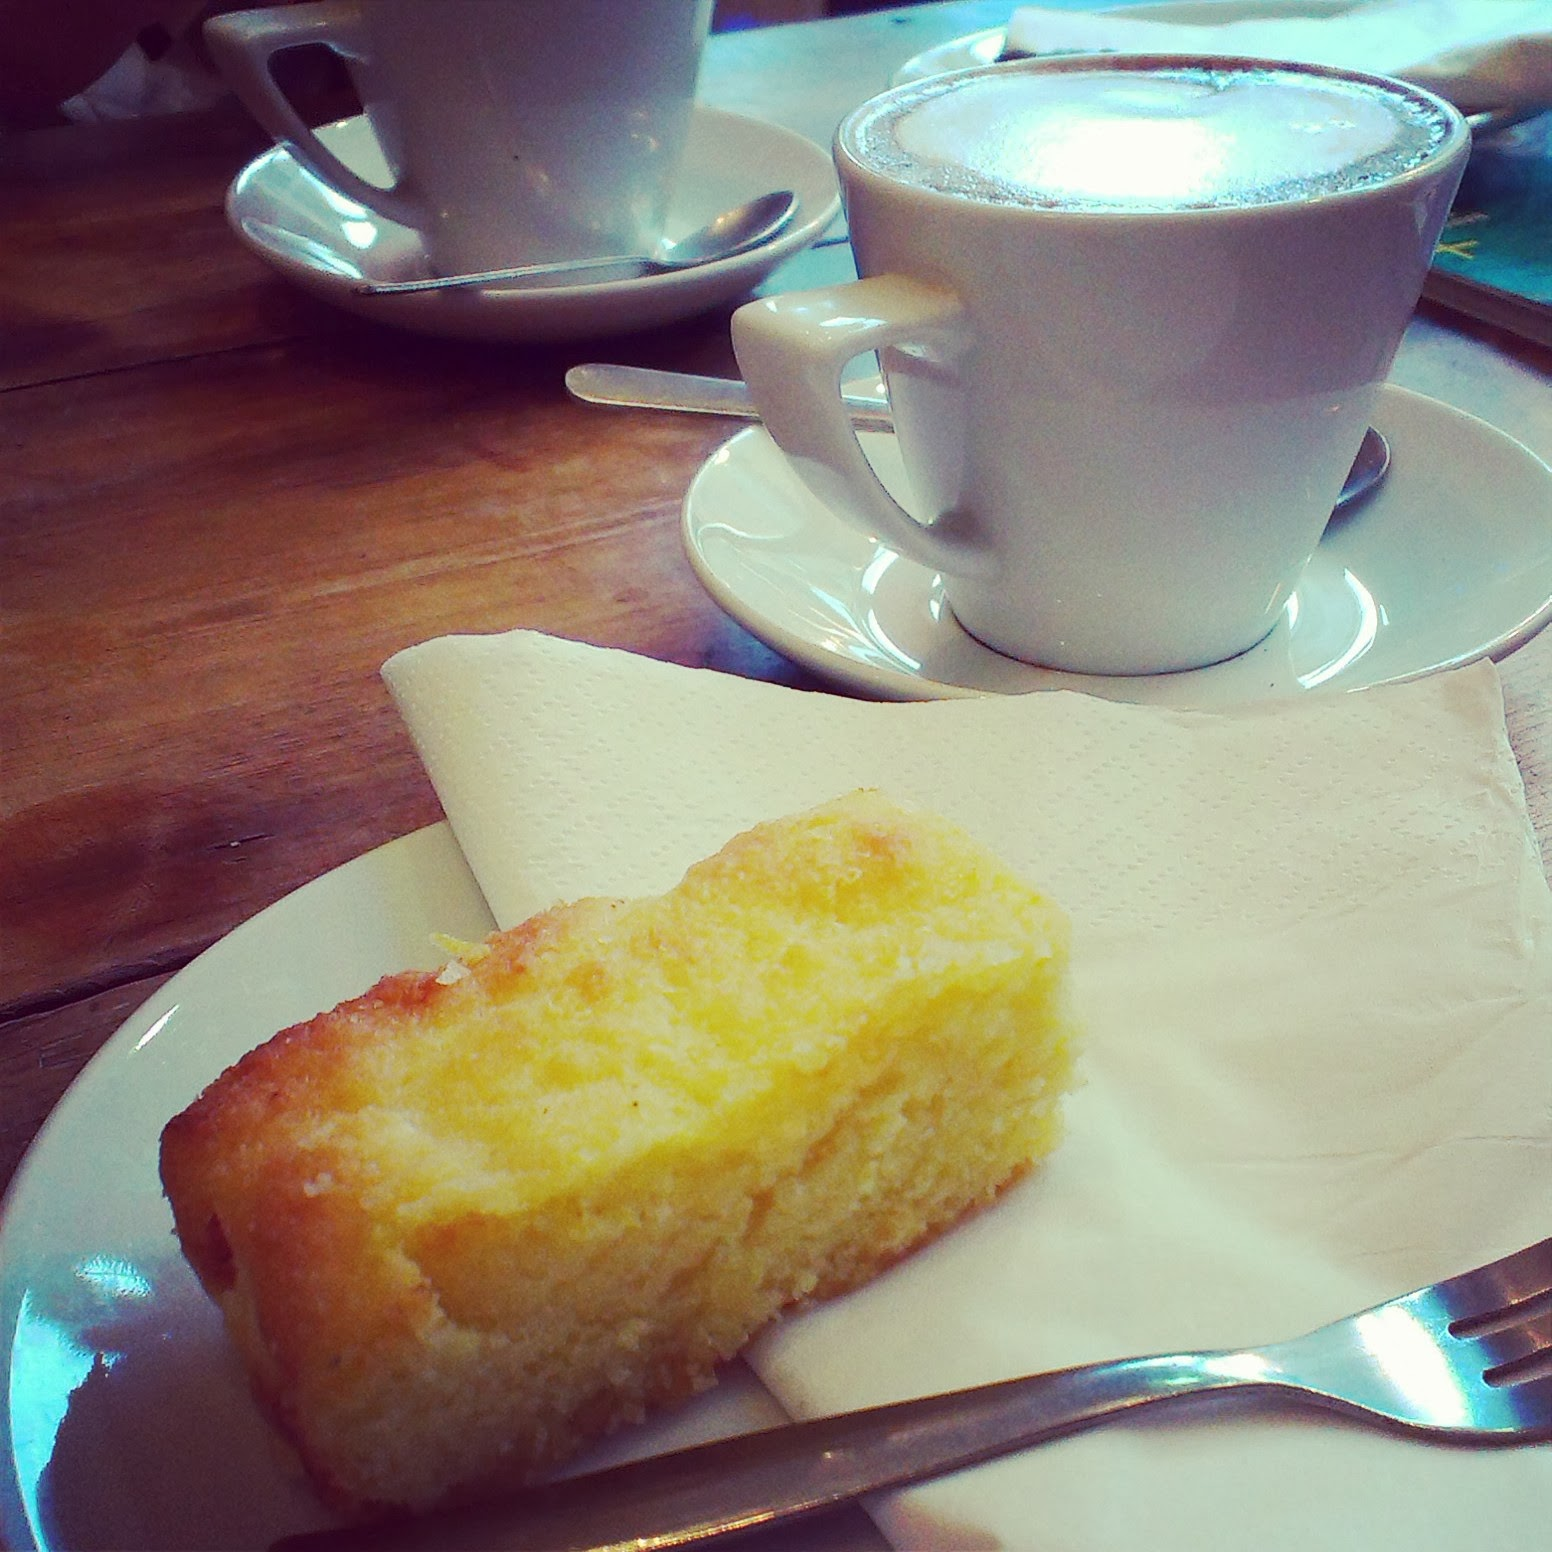 Lemon drizzle cake and hot chocolate